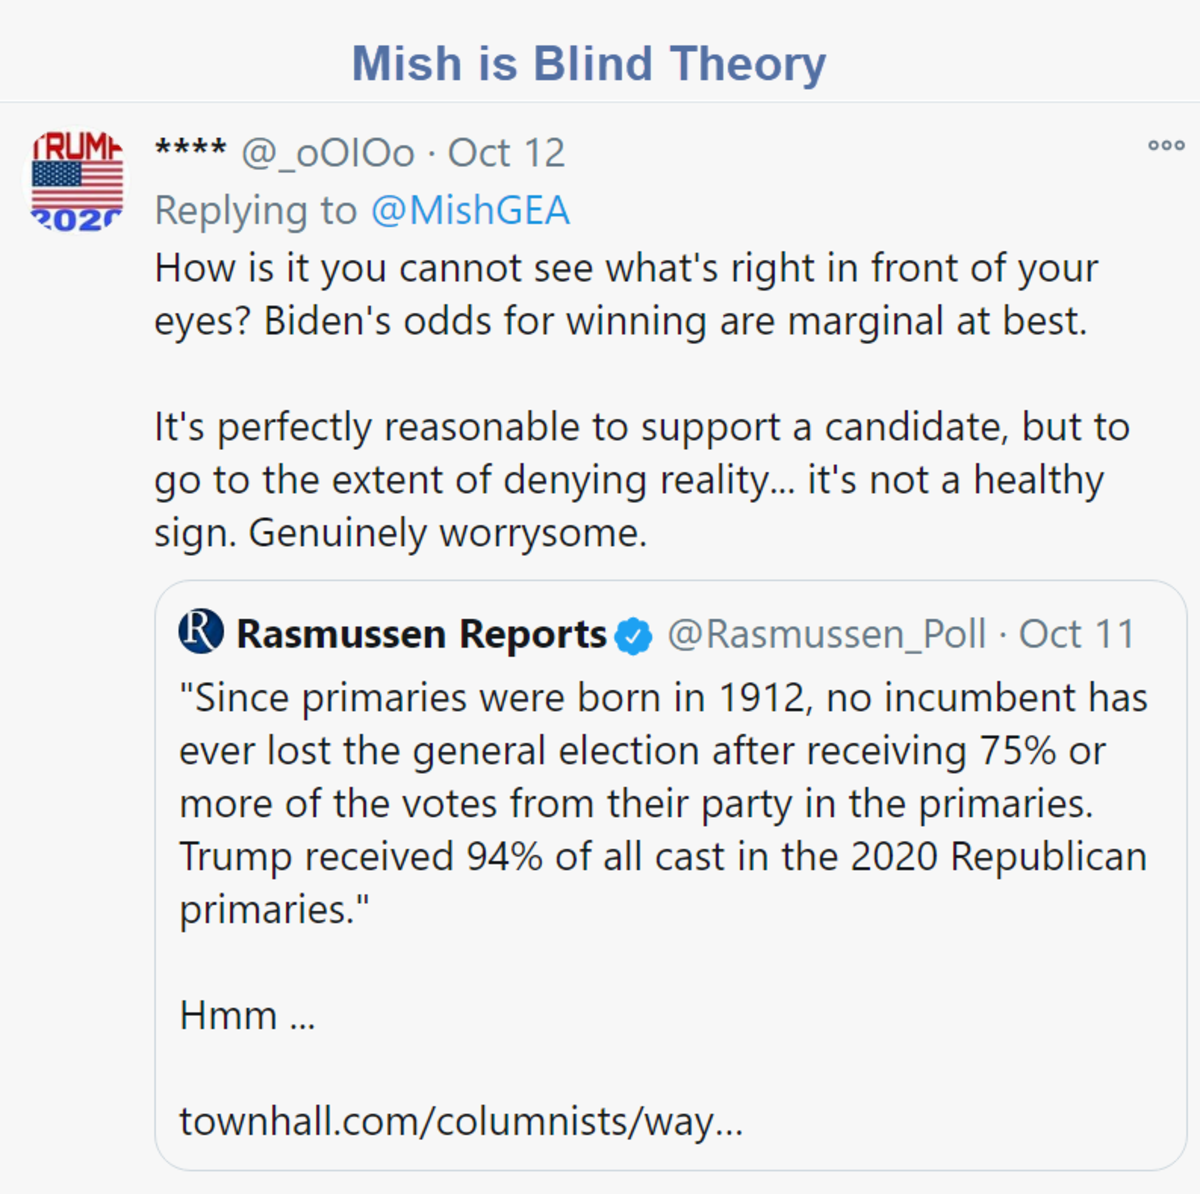 Mish is Blind Theory